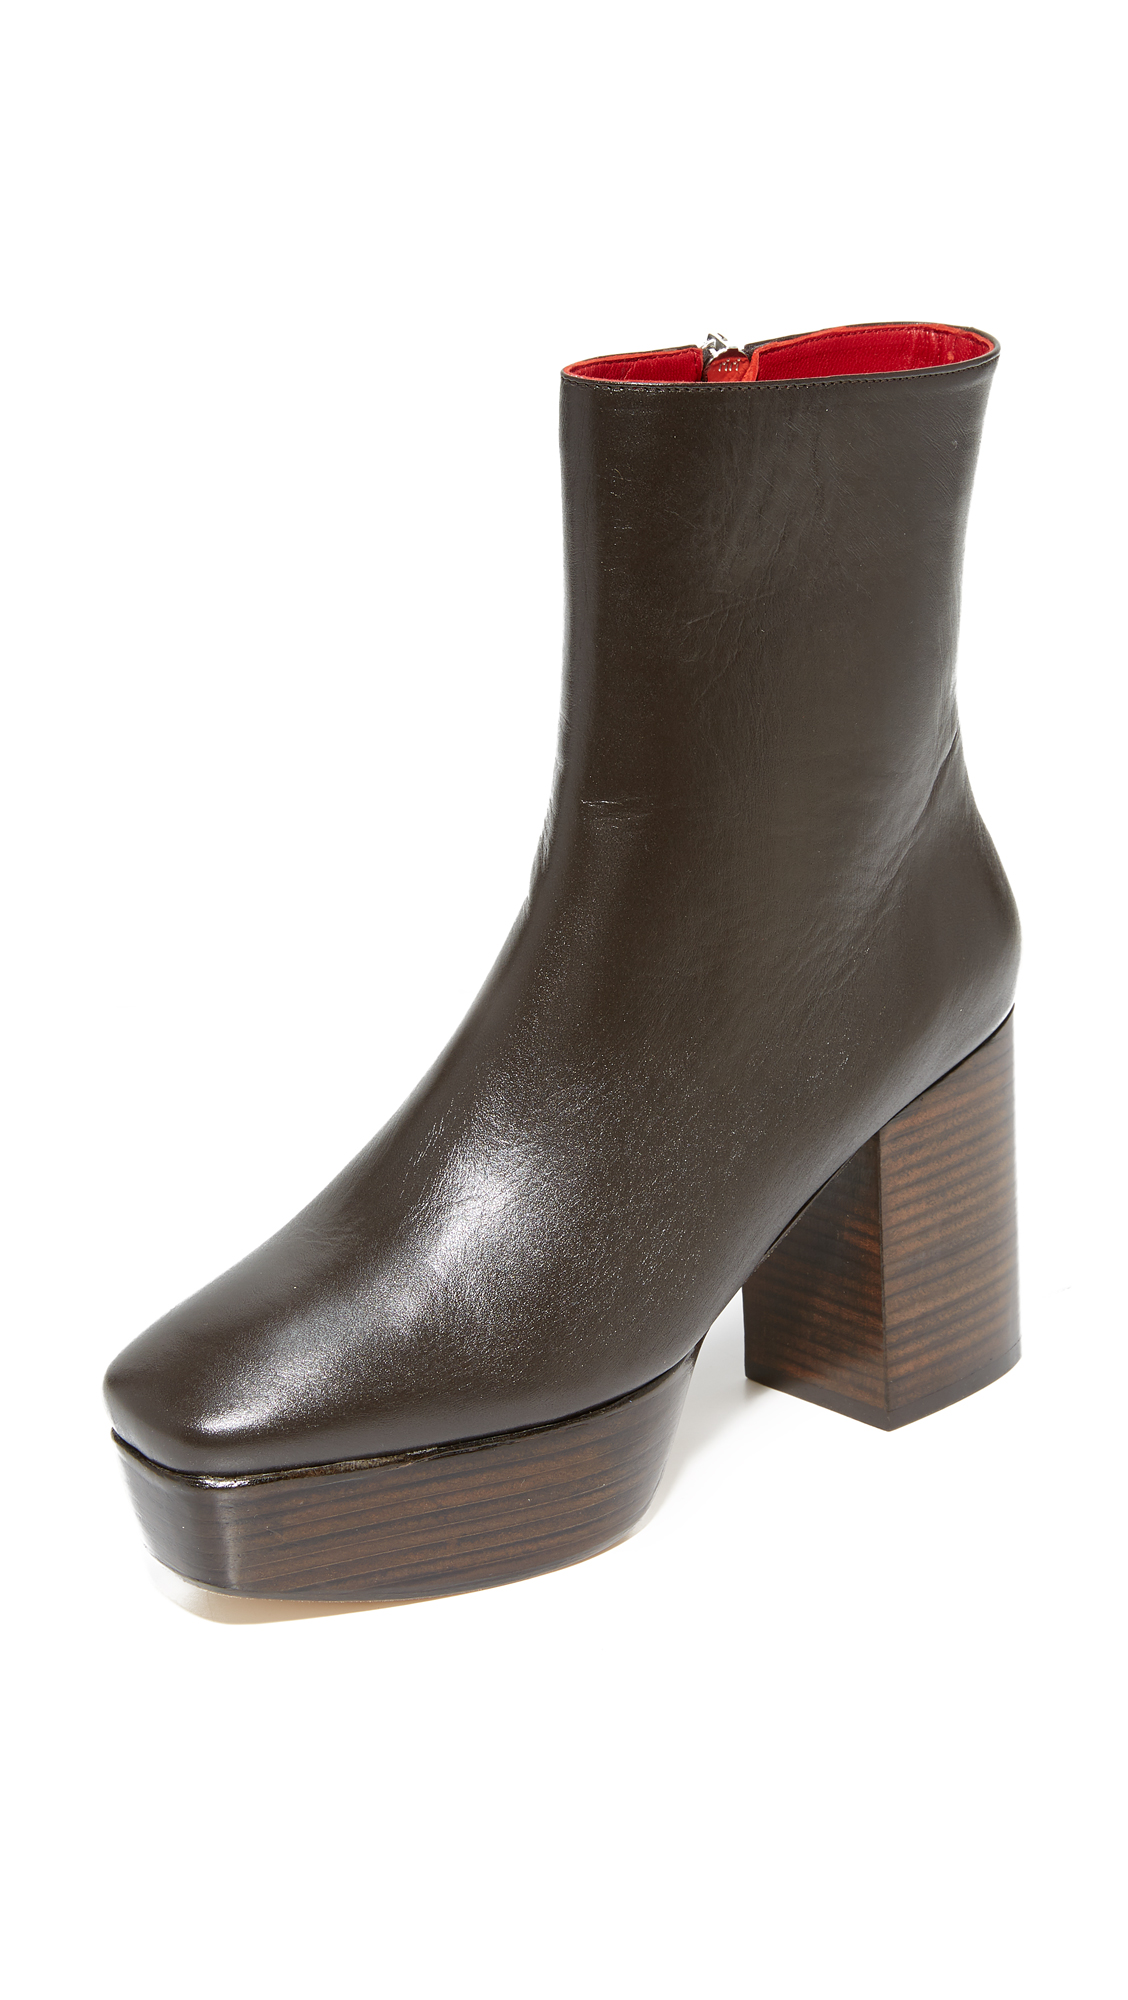 Dorateymur Firebird II Platform Booties - Brown